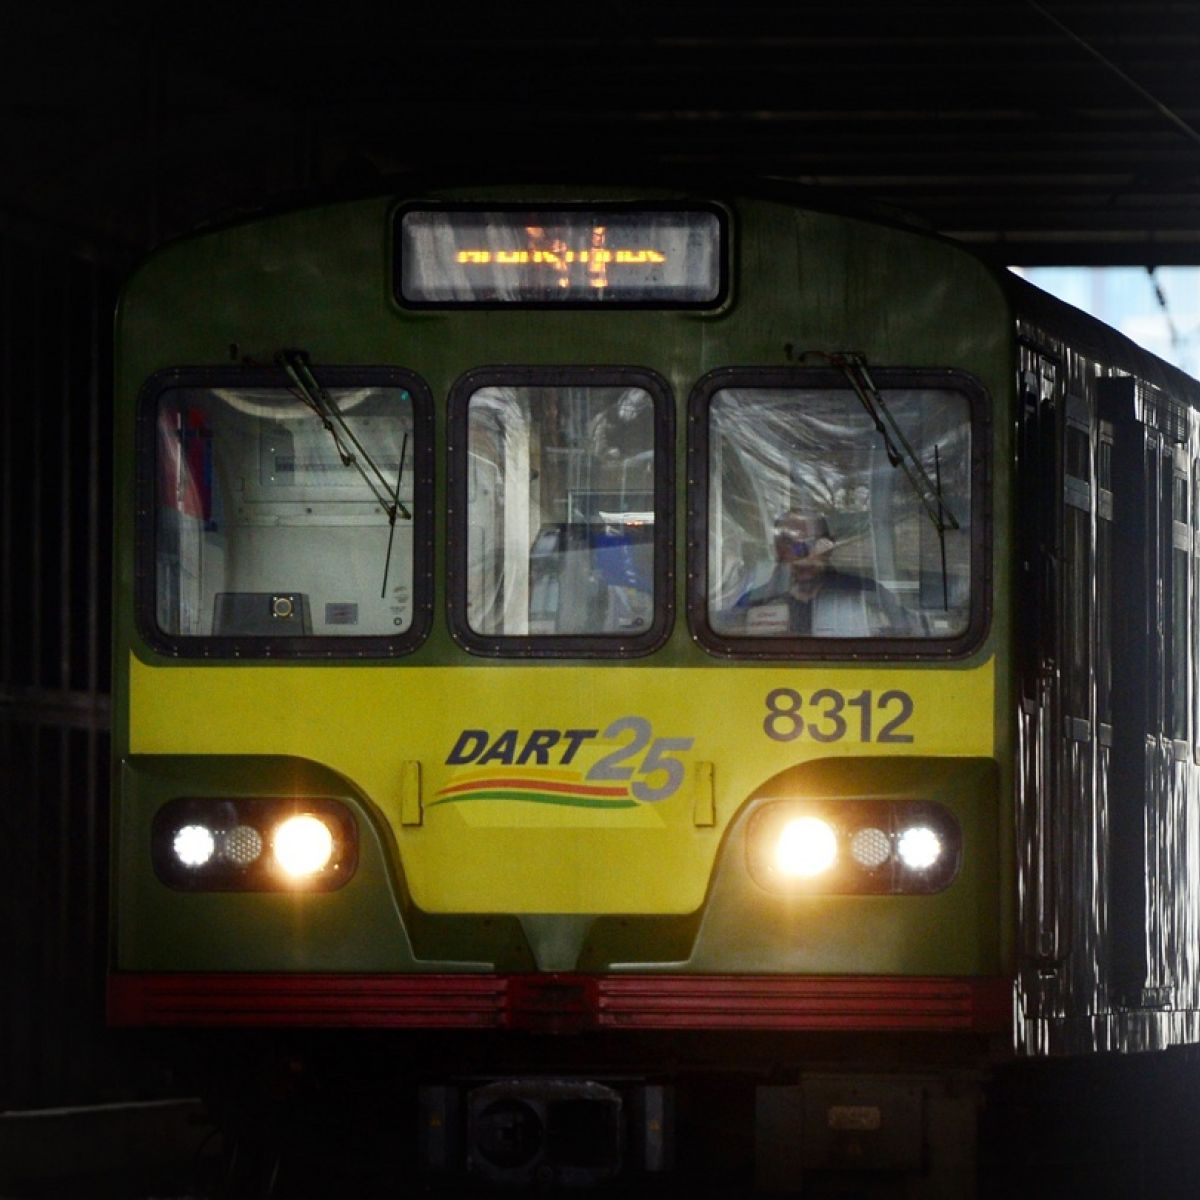 Temporary delay on Dart services as gardaí arrest passenger